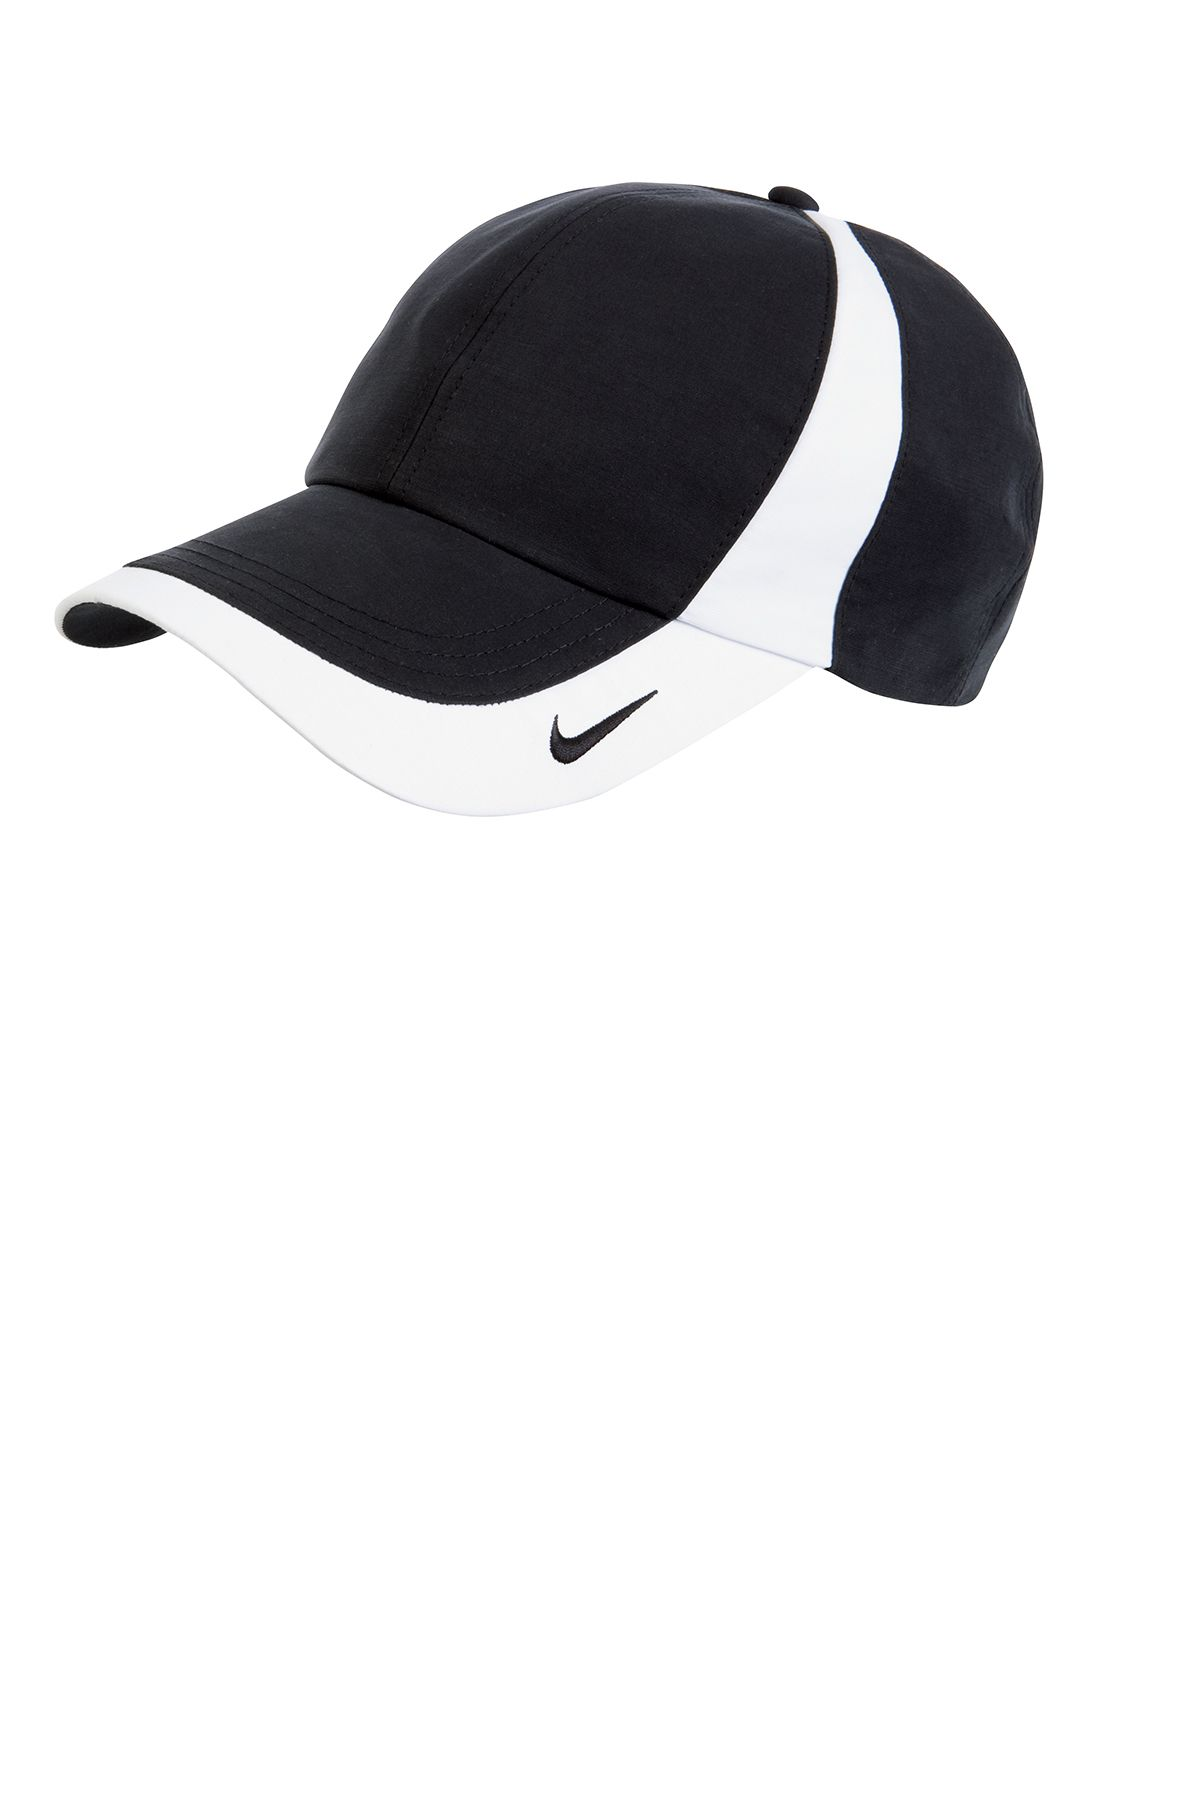 6c1ad04f2ac Built to Nike Golf s exacting standards